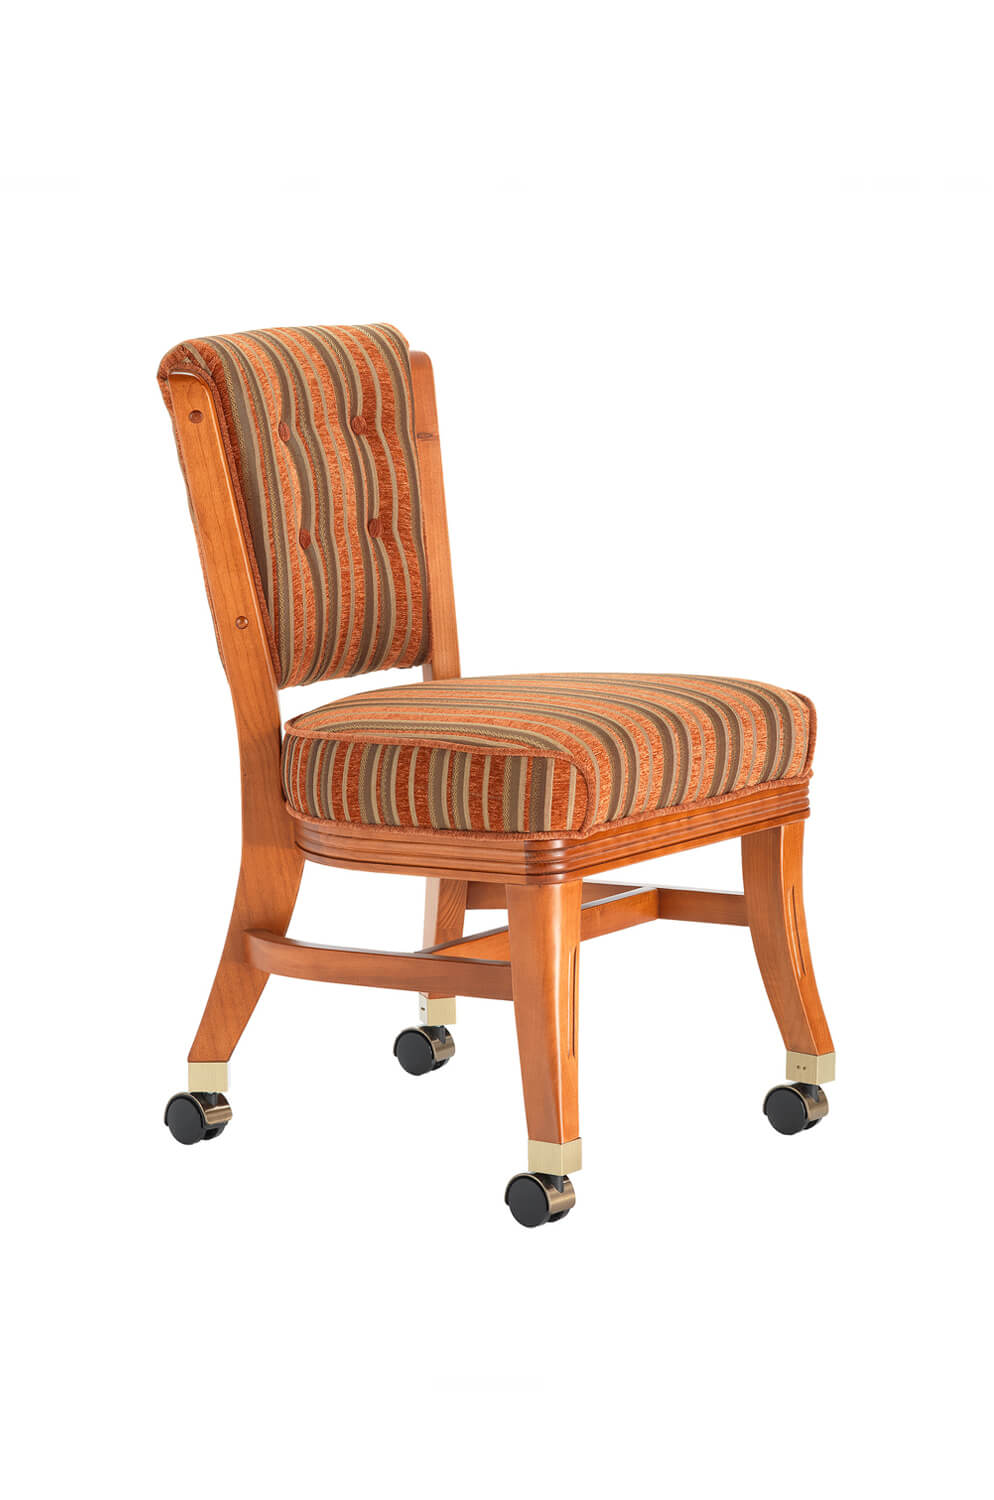 Darafeev S 960 Maple Wood, Fabric Dining Room Chairs With Casters